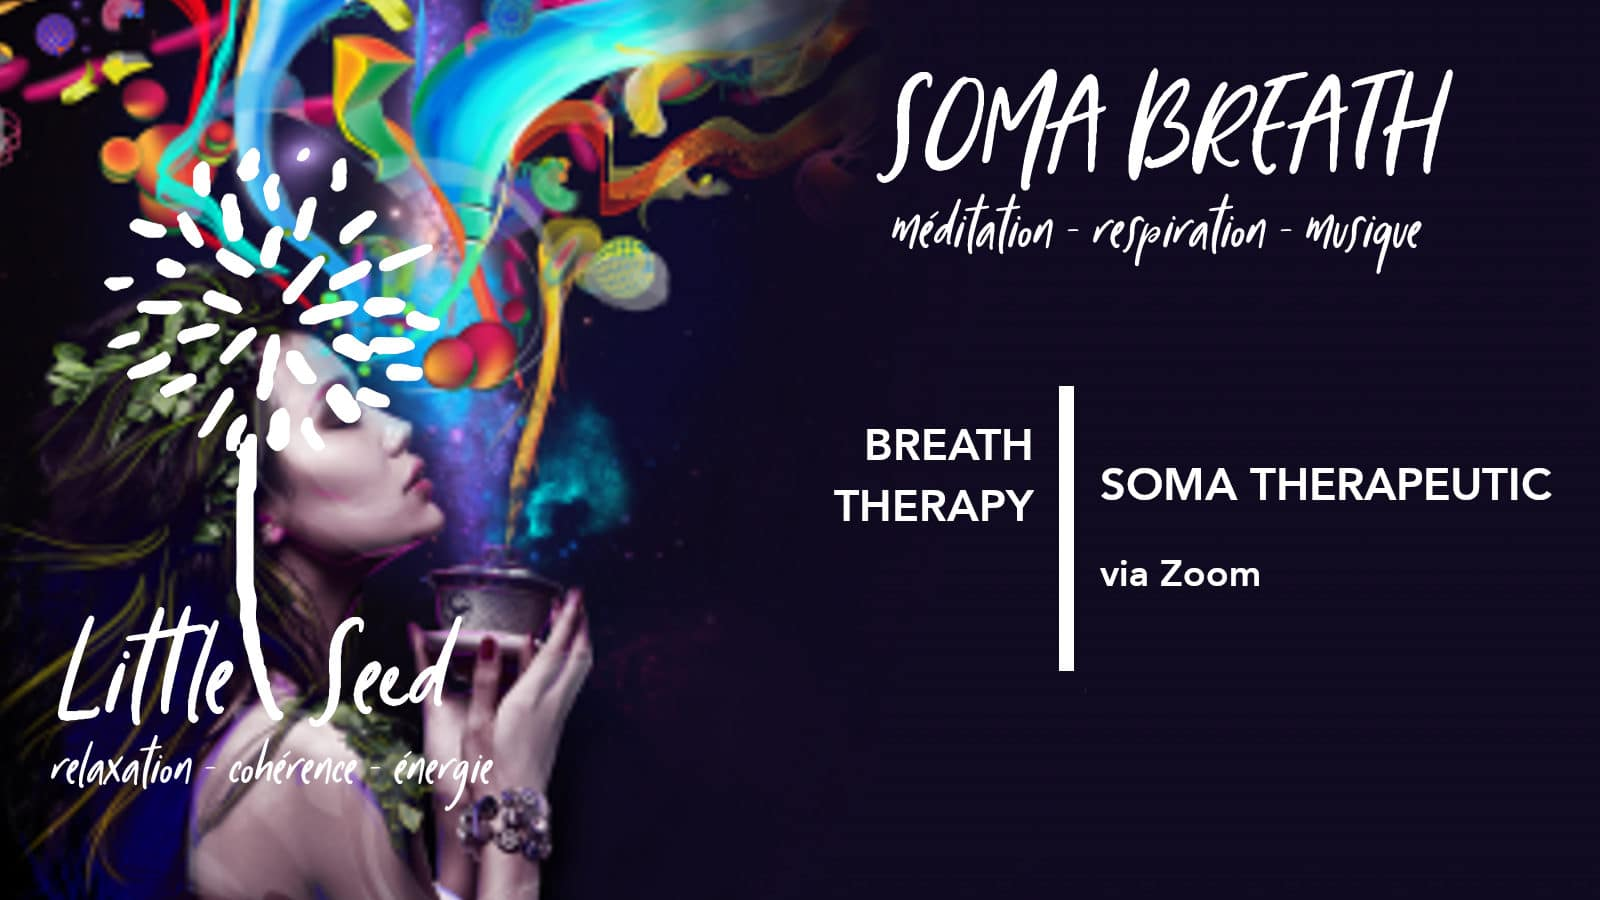 SOMA therapeutic: Little Seed by Chantal & David : Yoga, Soma Breath, Nutrition